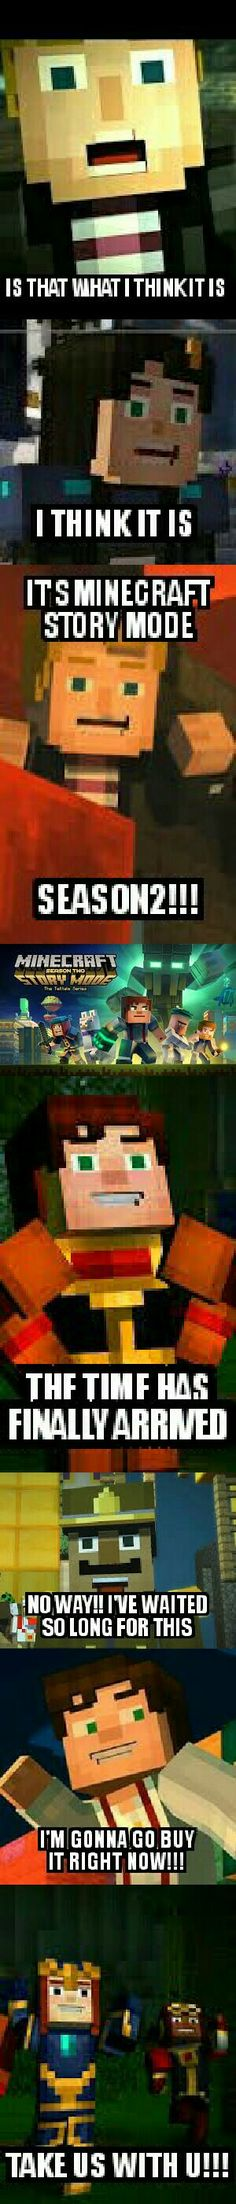 27 Best minecraft story mode images in 2018 | Minecraft, How to play